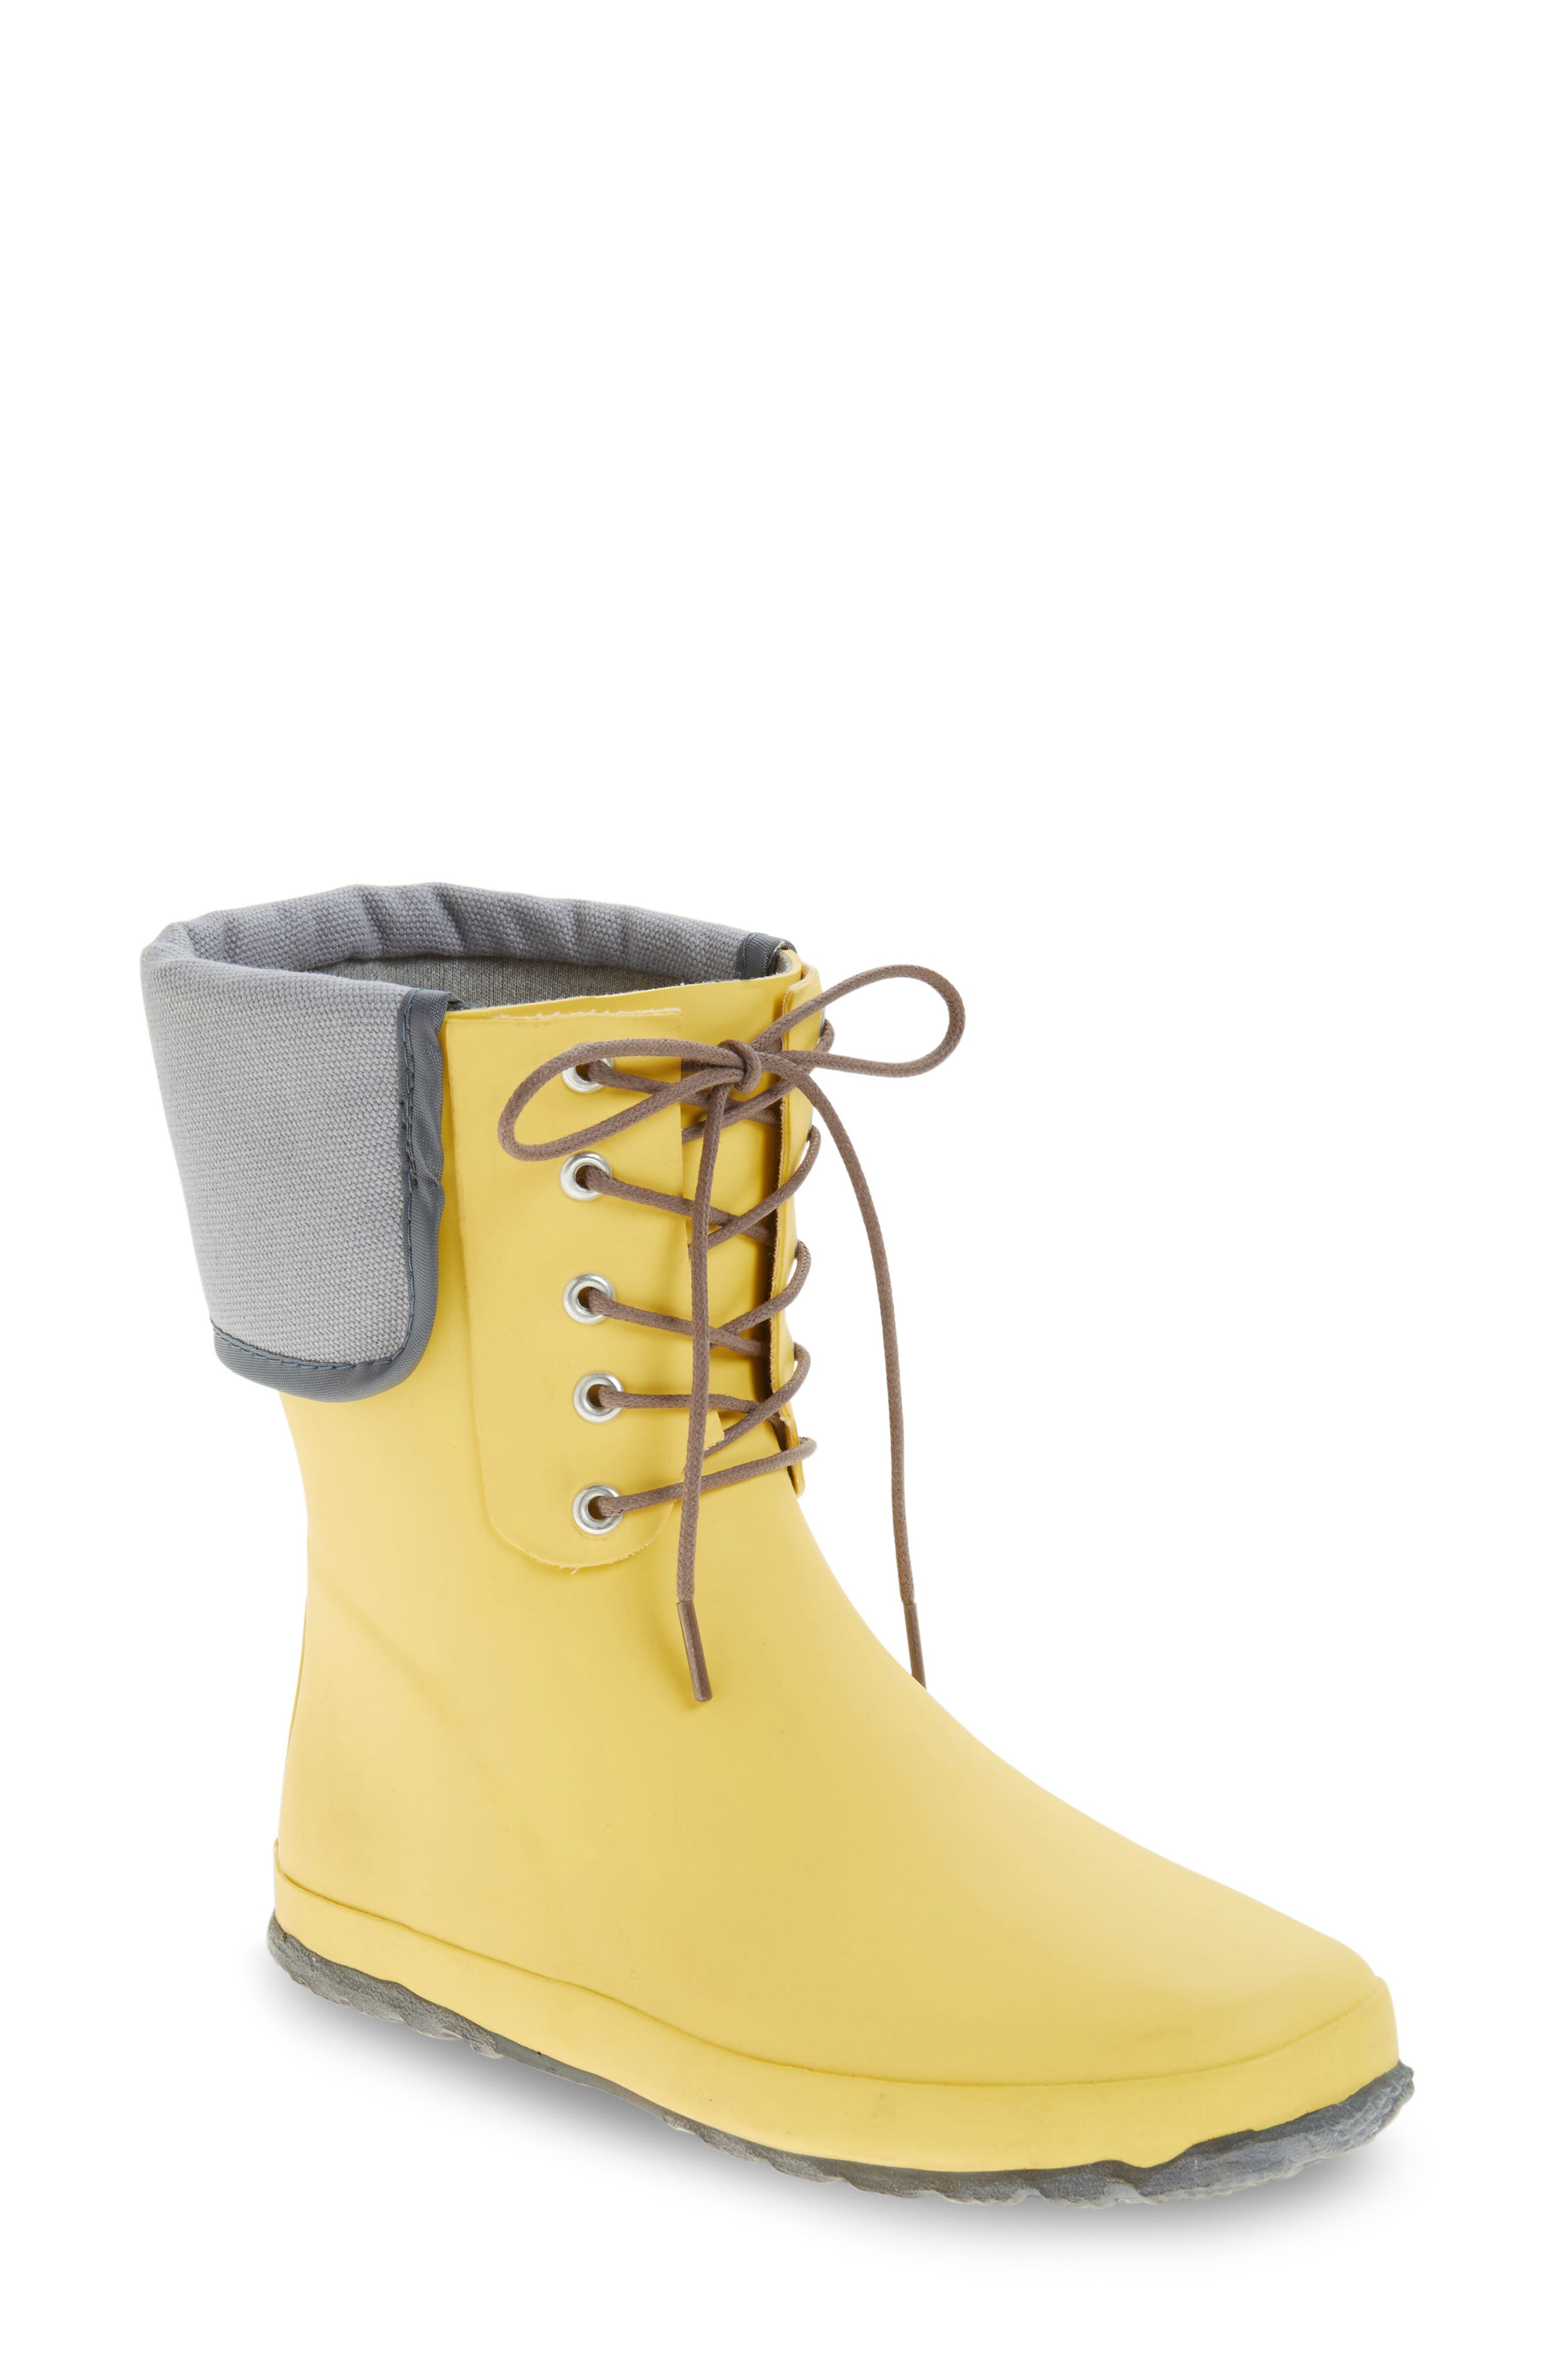 DÄV, Lace-Up Mid Weatherproof Boot, Main thumbnail 1, color, YELLOW